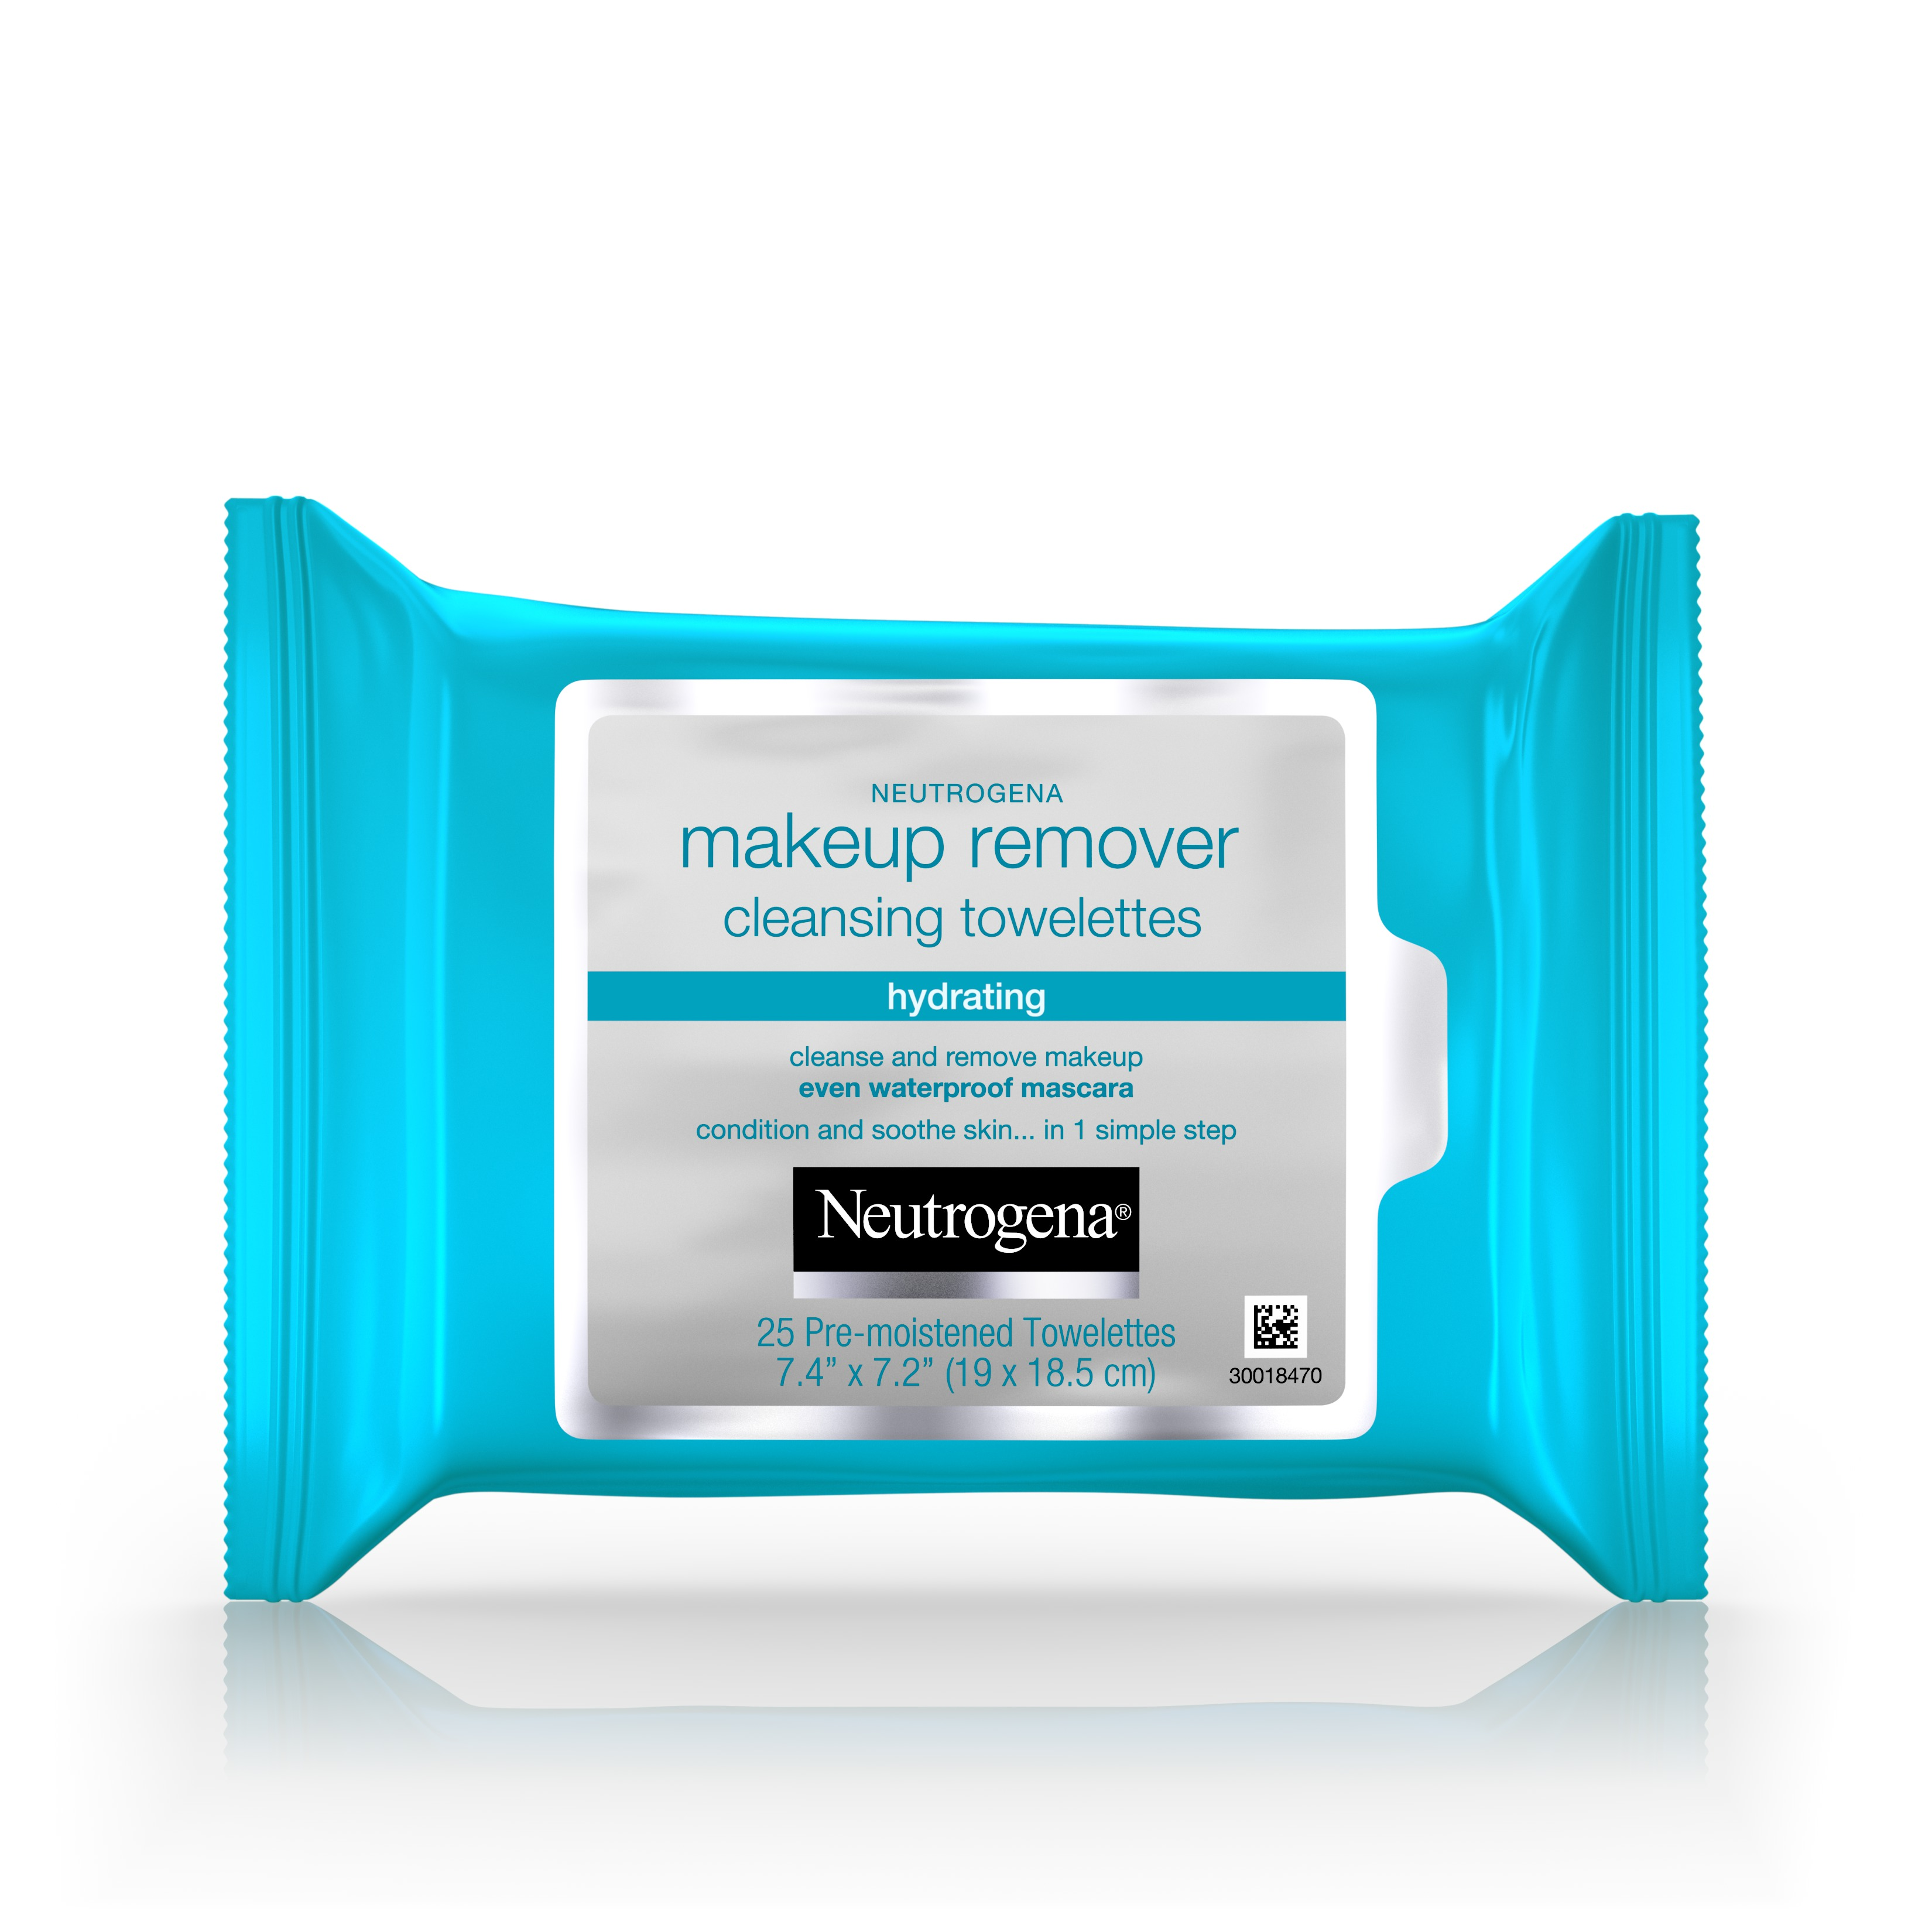 Neutrogena Hydrating Makeup Remover Cleansing Facial Towelettes, 25 Count